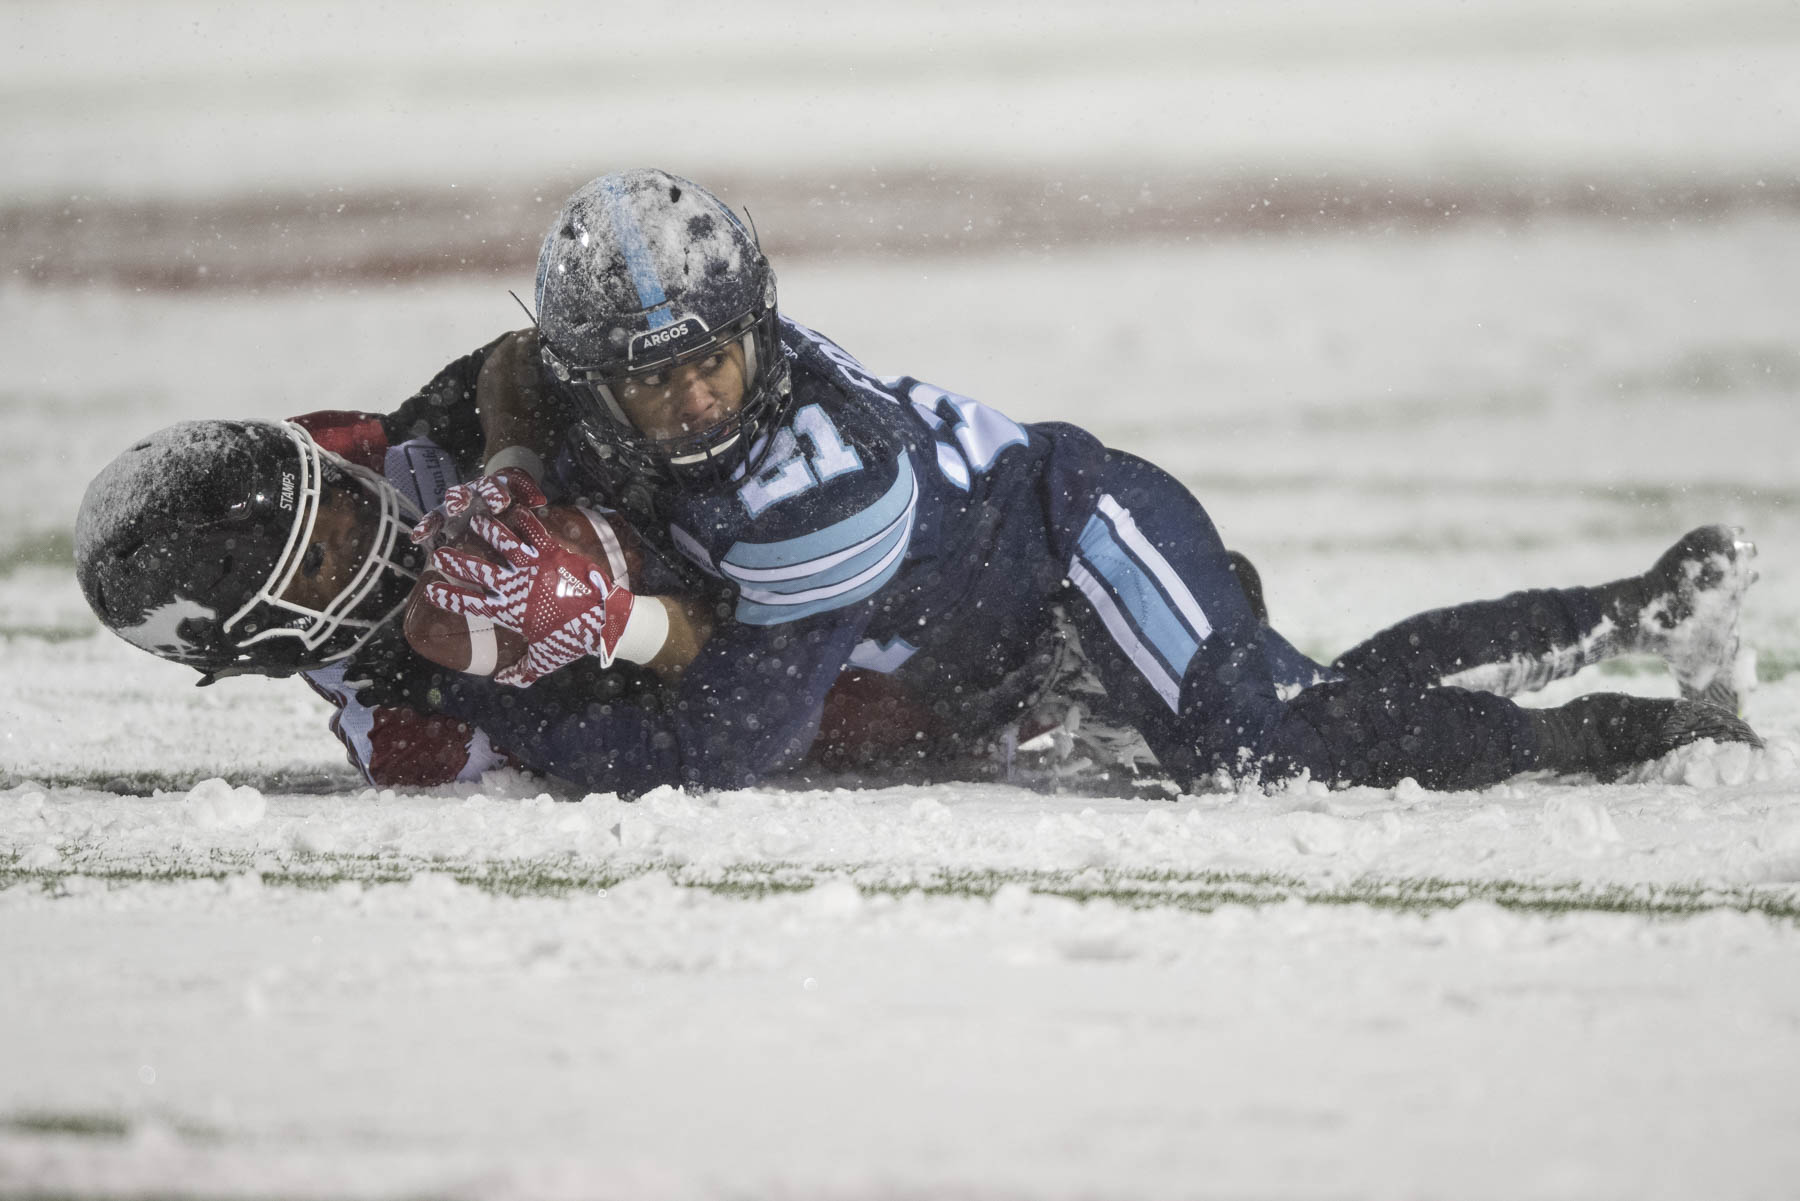 Le match de championnat de la Coupe Grey de la Ligue canadienne de football s'est déroulé selon la tradition canadienne, sous la neige.